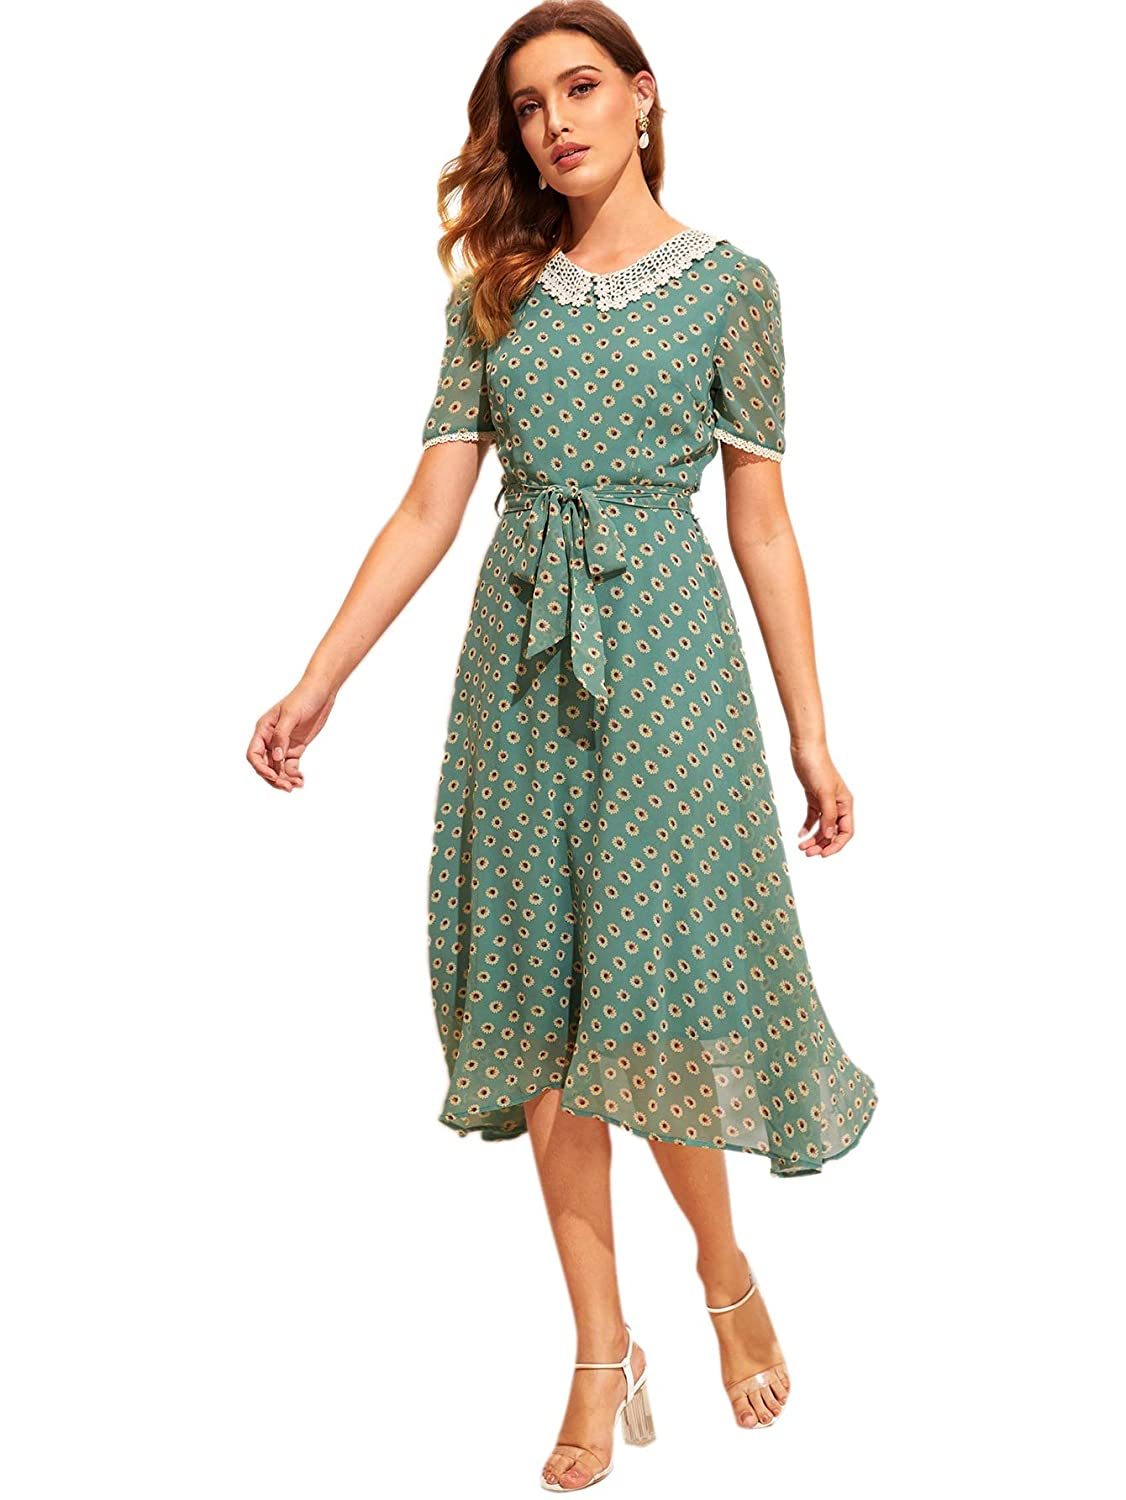 500 Vintage Style Dresses for Sale | Vintage Inspired Dresses Verdusa Womens Peter Pan Collar Lace Trim Floral Belted Vintage Chiffon Midi Dress $34.99 AT vintagedancer.com